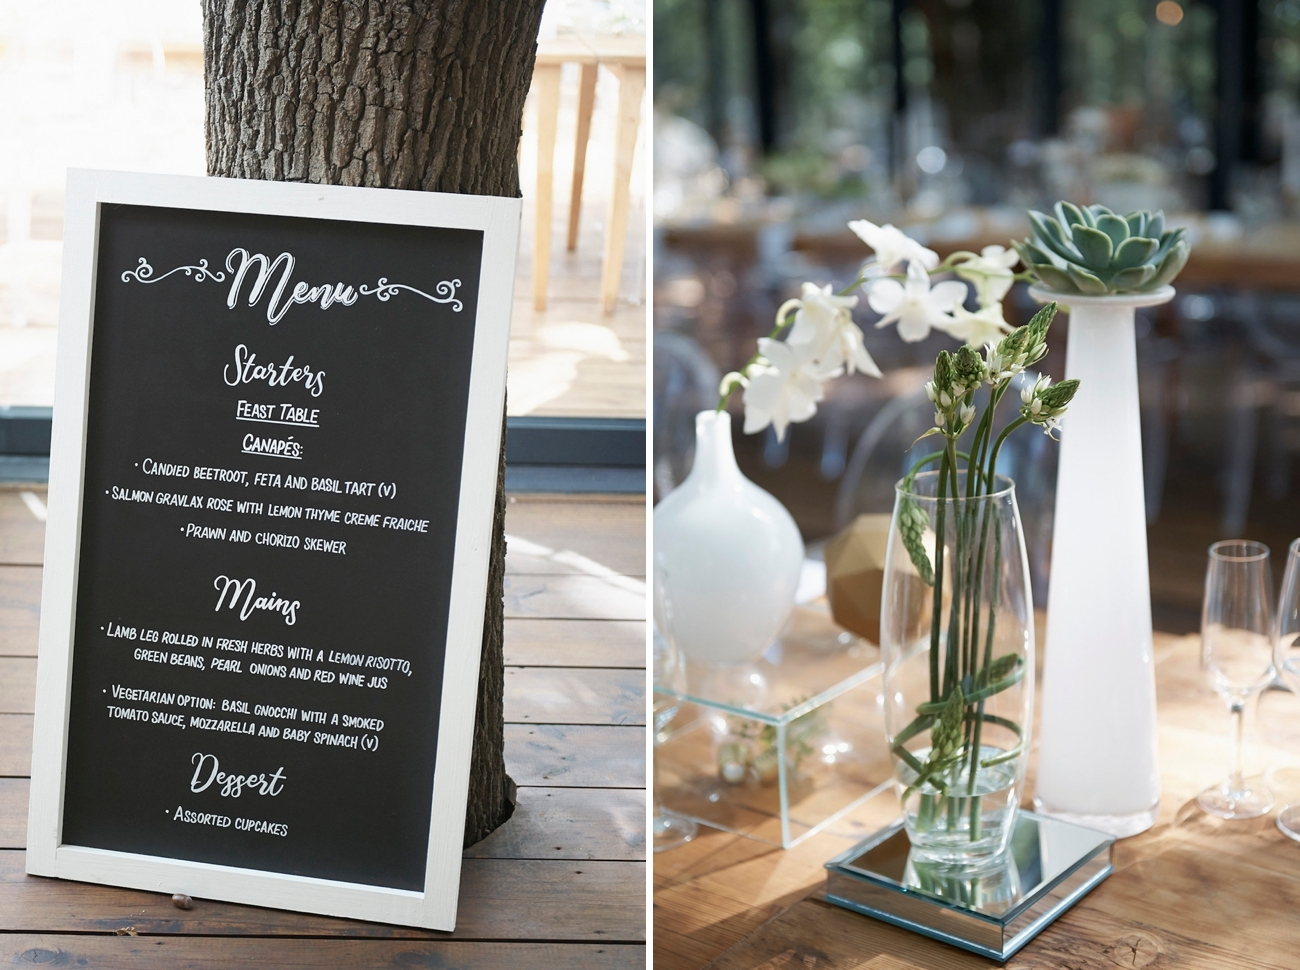 Romantic Forest Wedding Decor   Image: Knit Together Photography